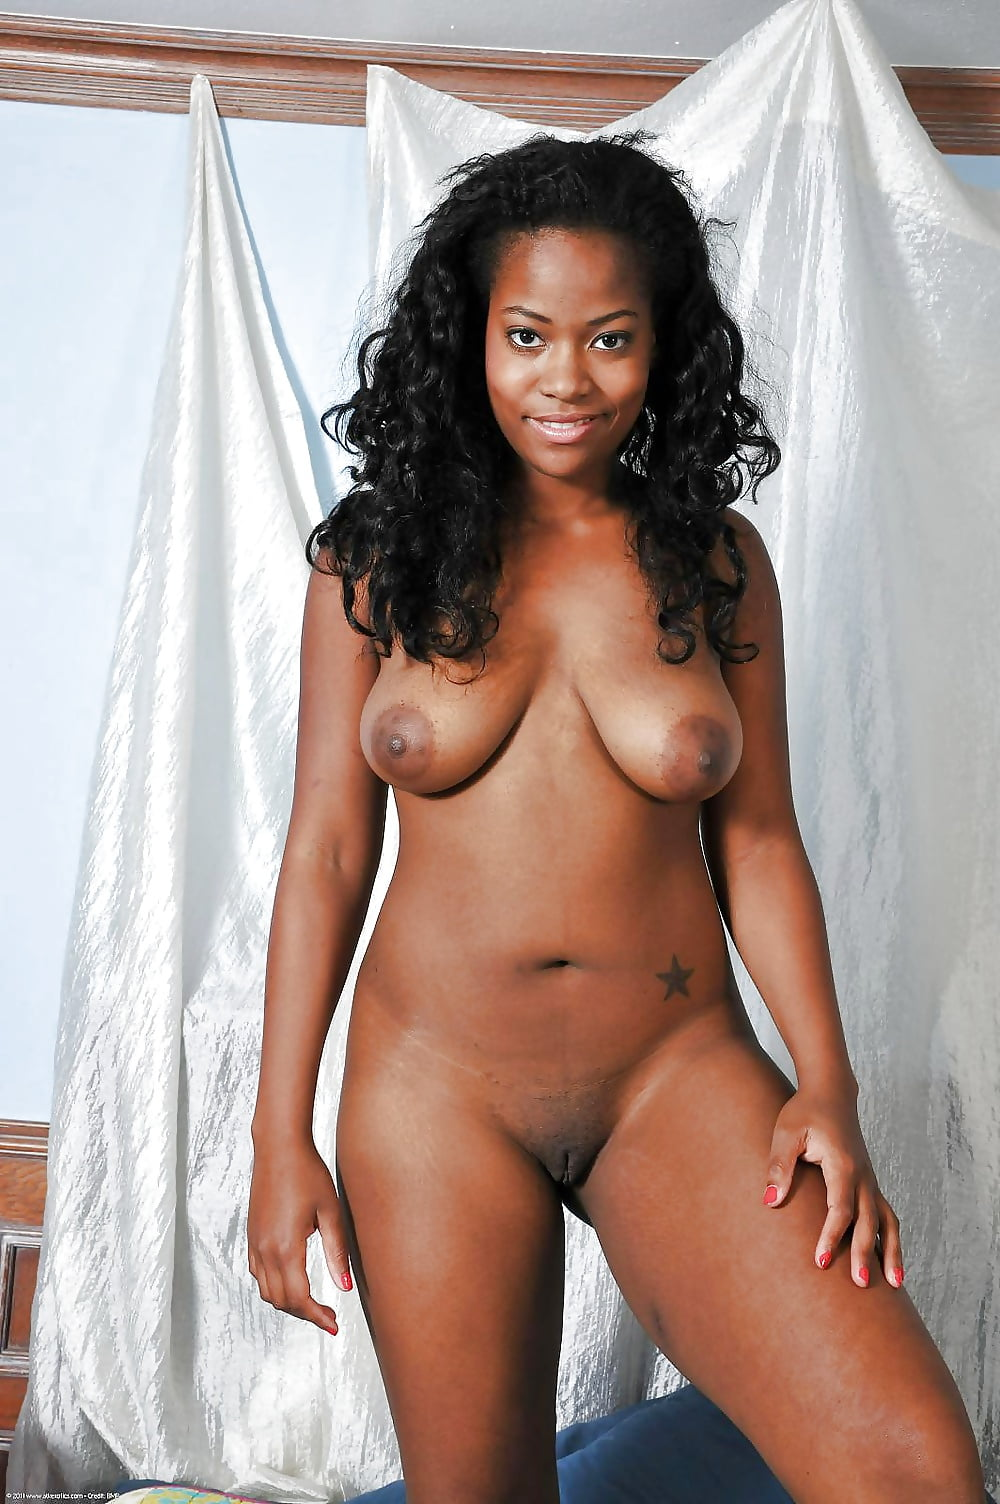 Black Ladies Posing Nude